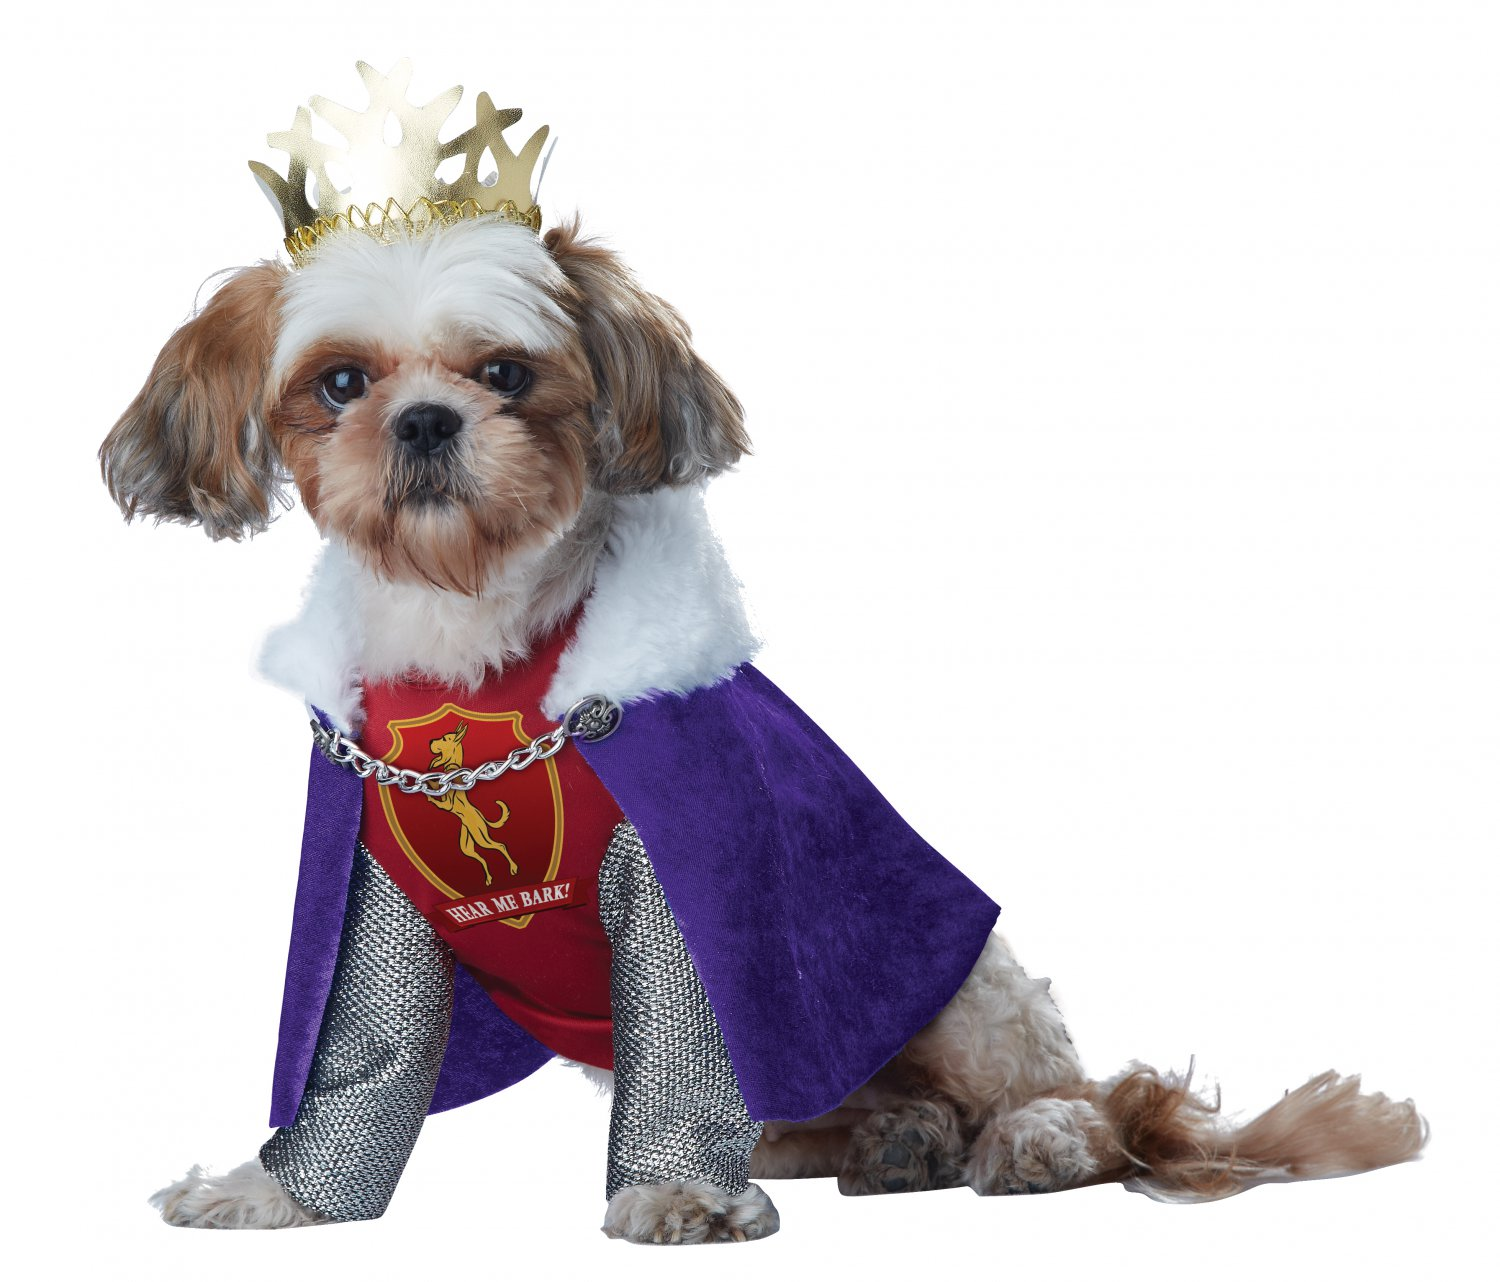 Renaissance King of Bones Pet Dog Costume Size: X-Small #20138